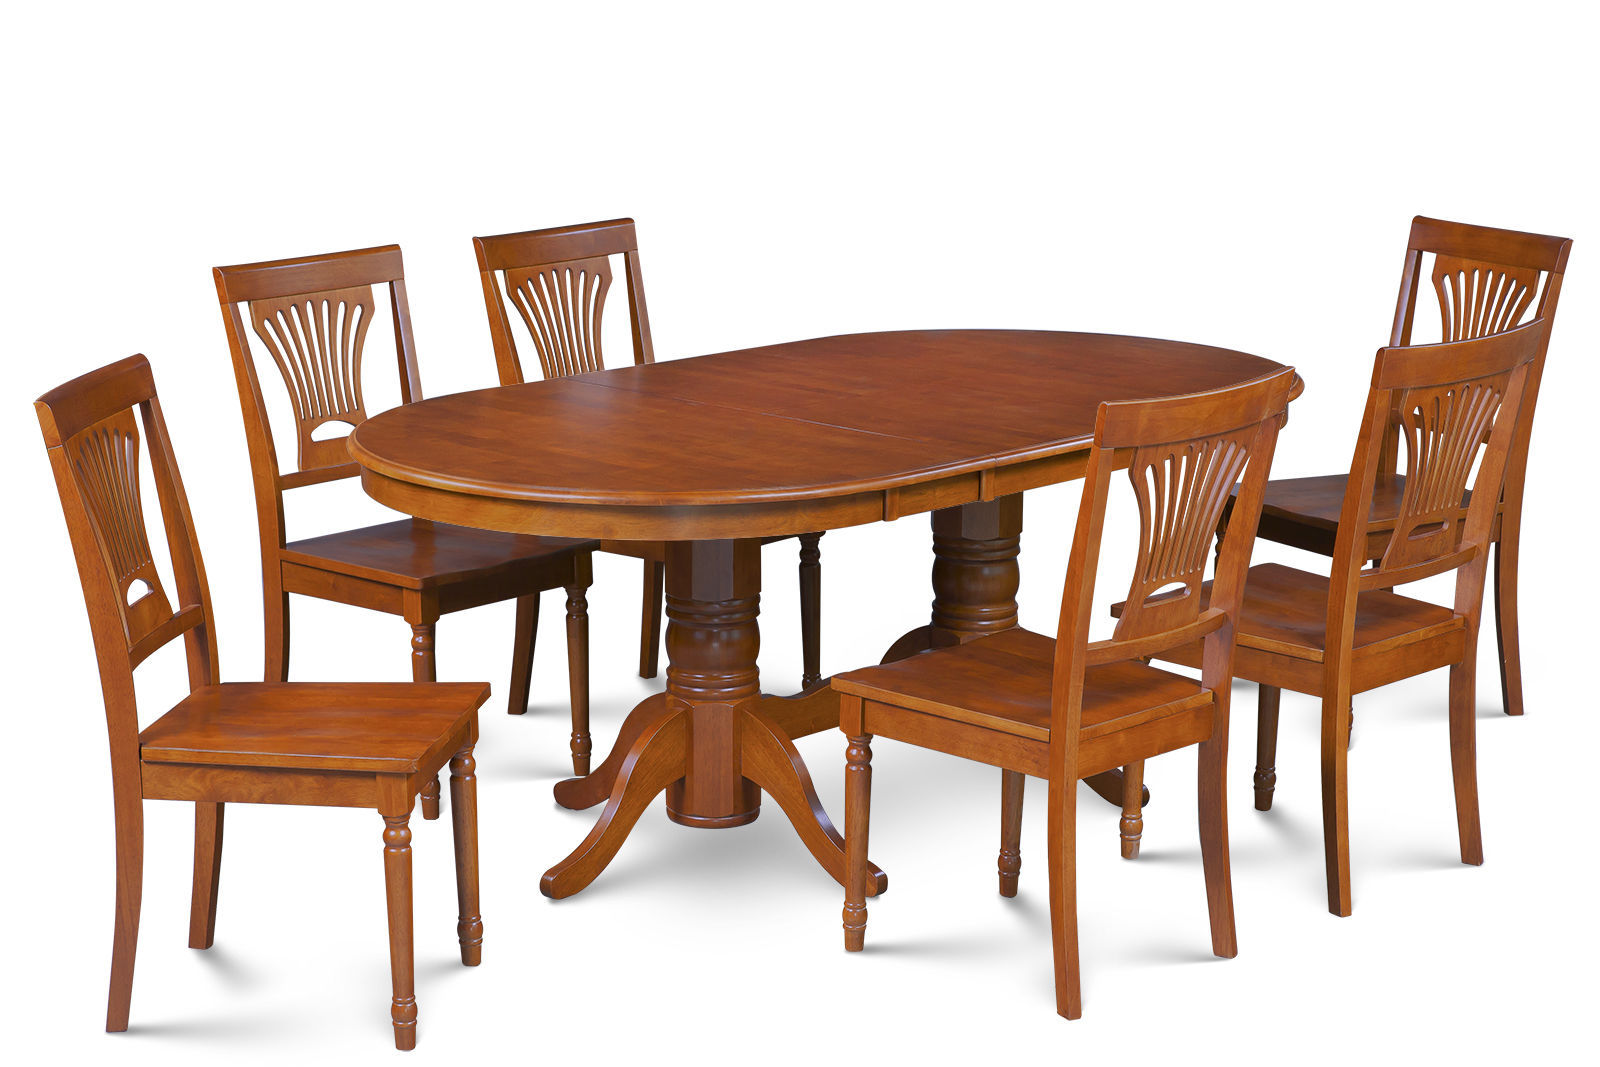 """DINETTE DINING ROOM TABLE SET 42""""X78"""" W. WOODEN SEATS IN SADDLE BROWN"""